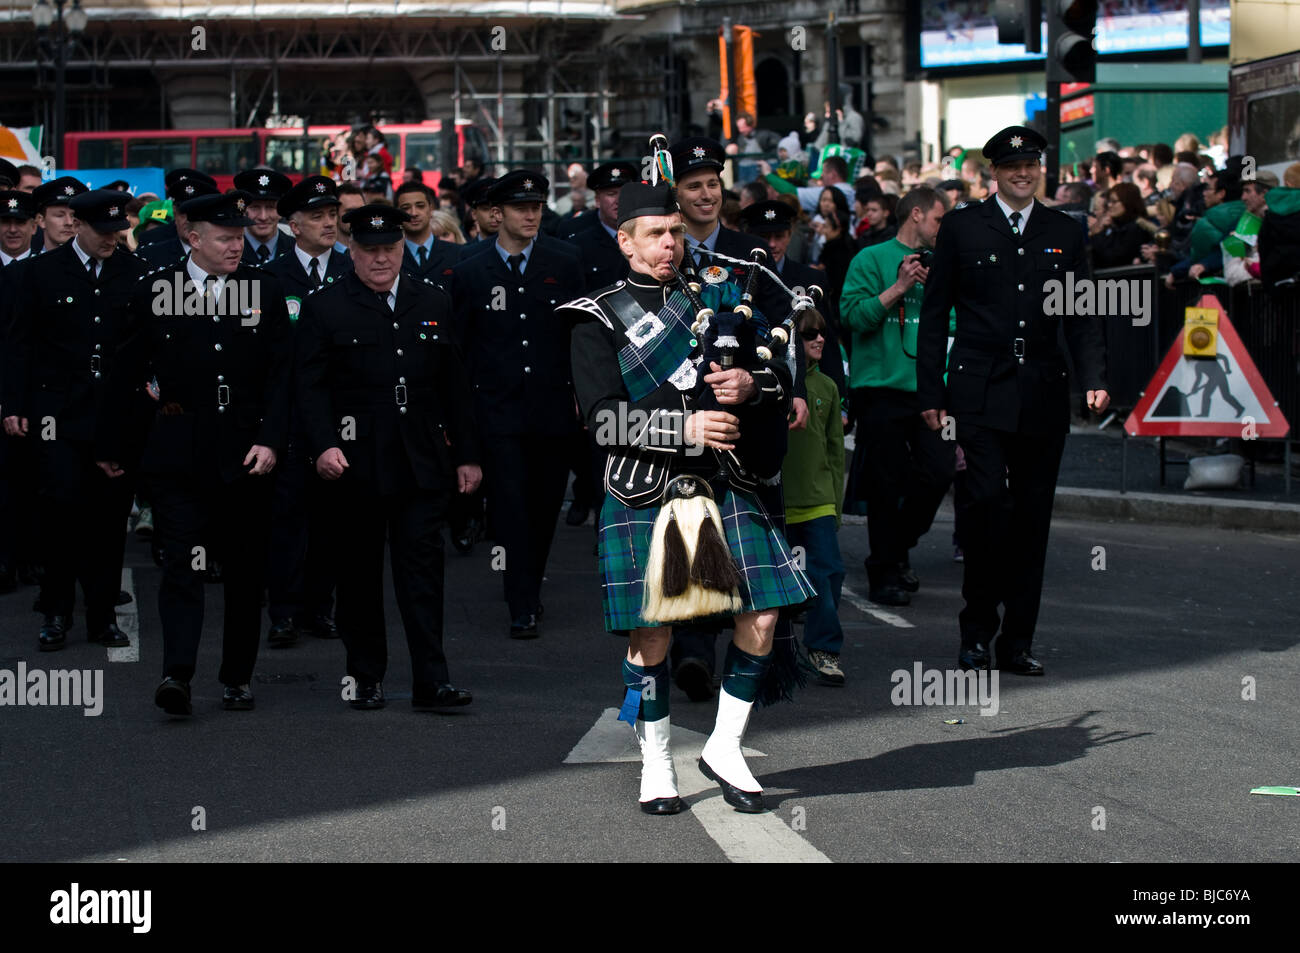 A piper leading a parade of fire fighters during the St Patricks Day Parade in London. - Stock Image